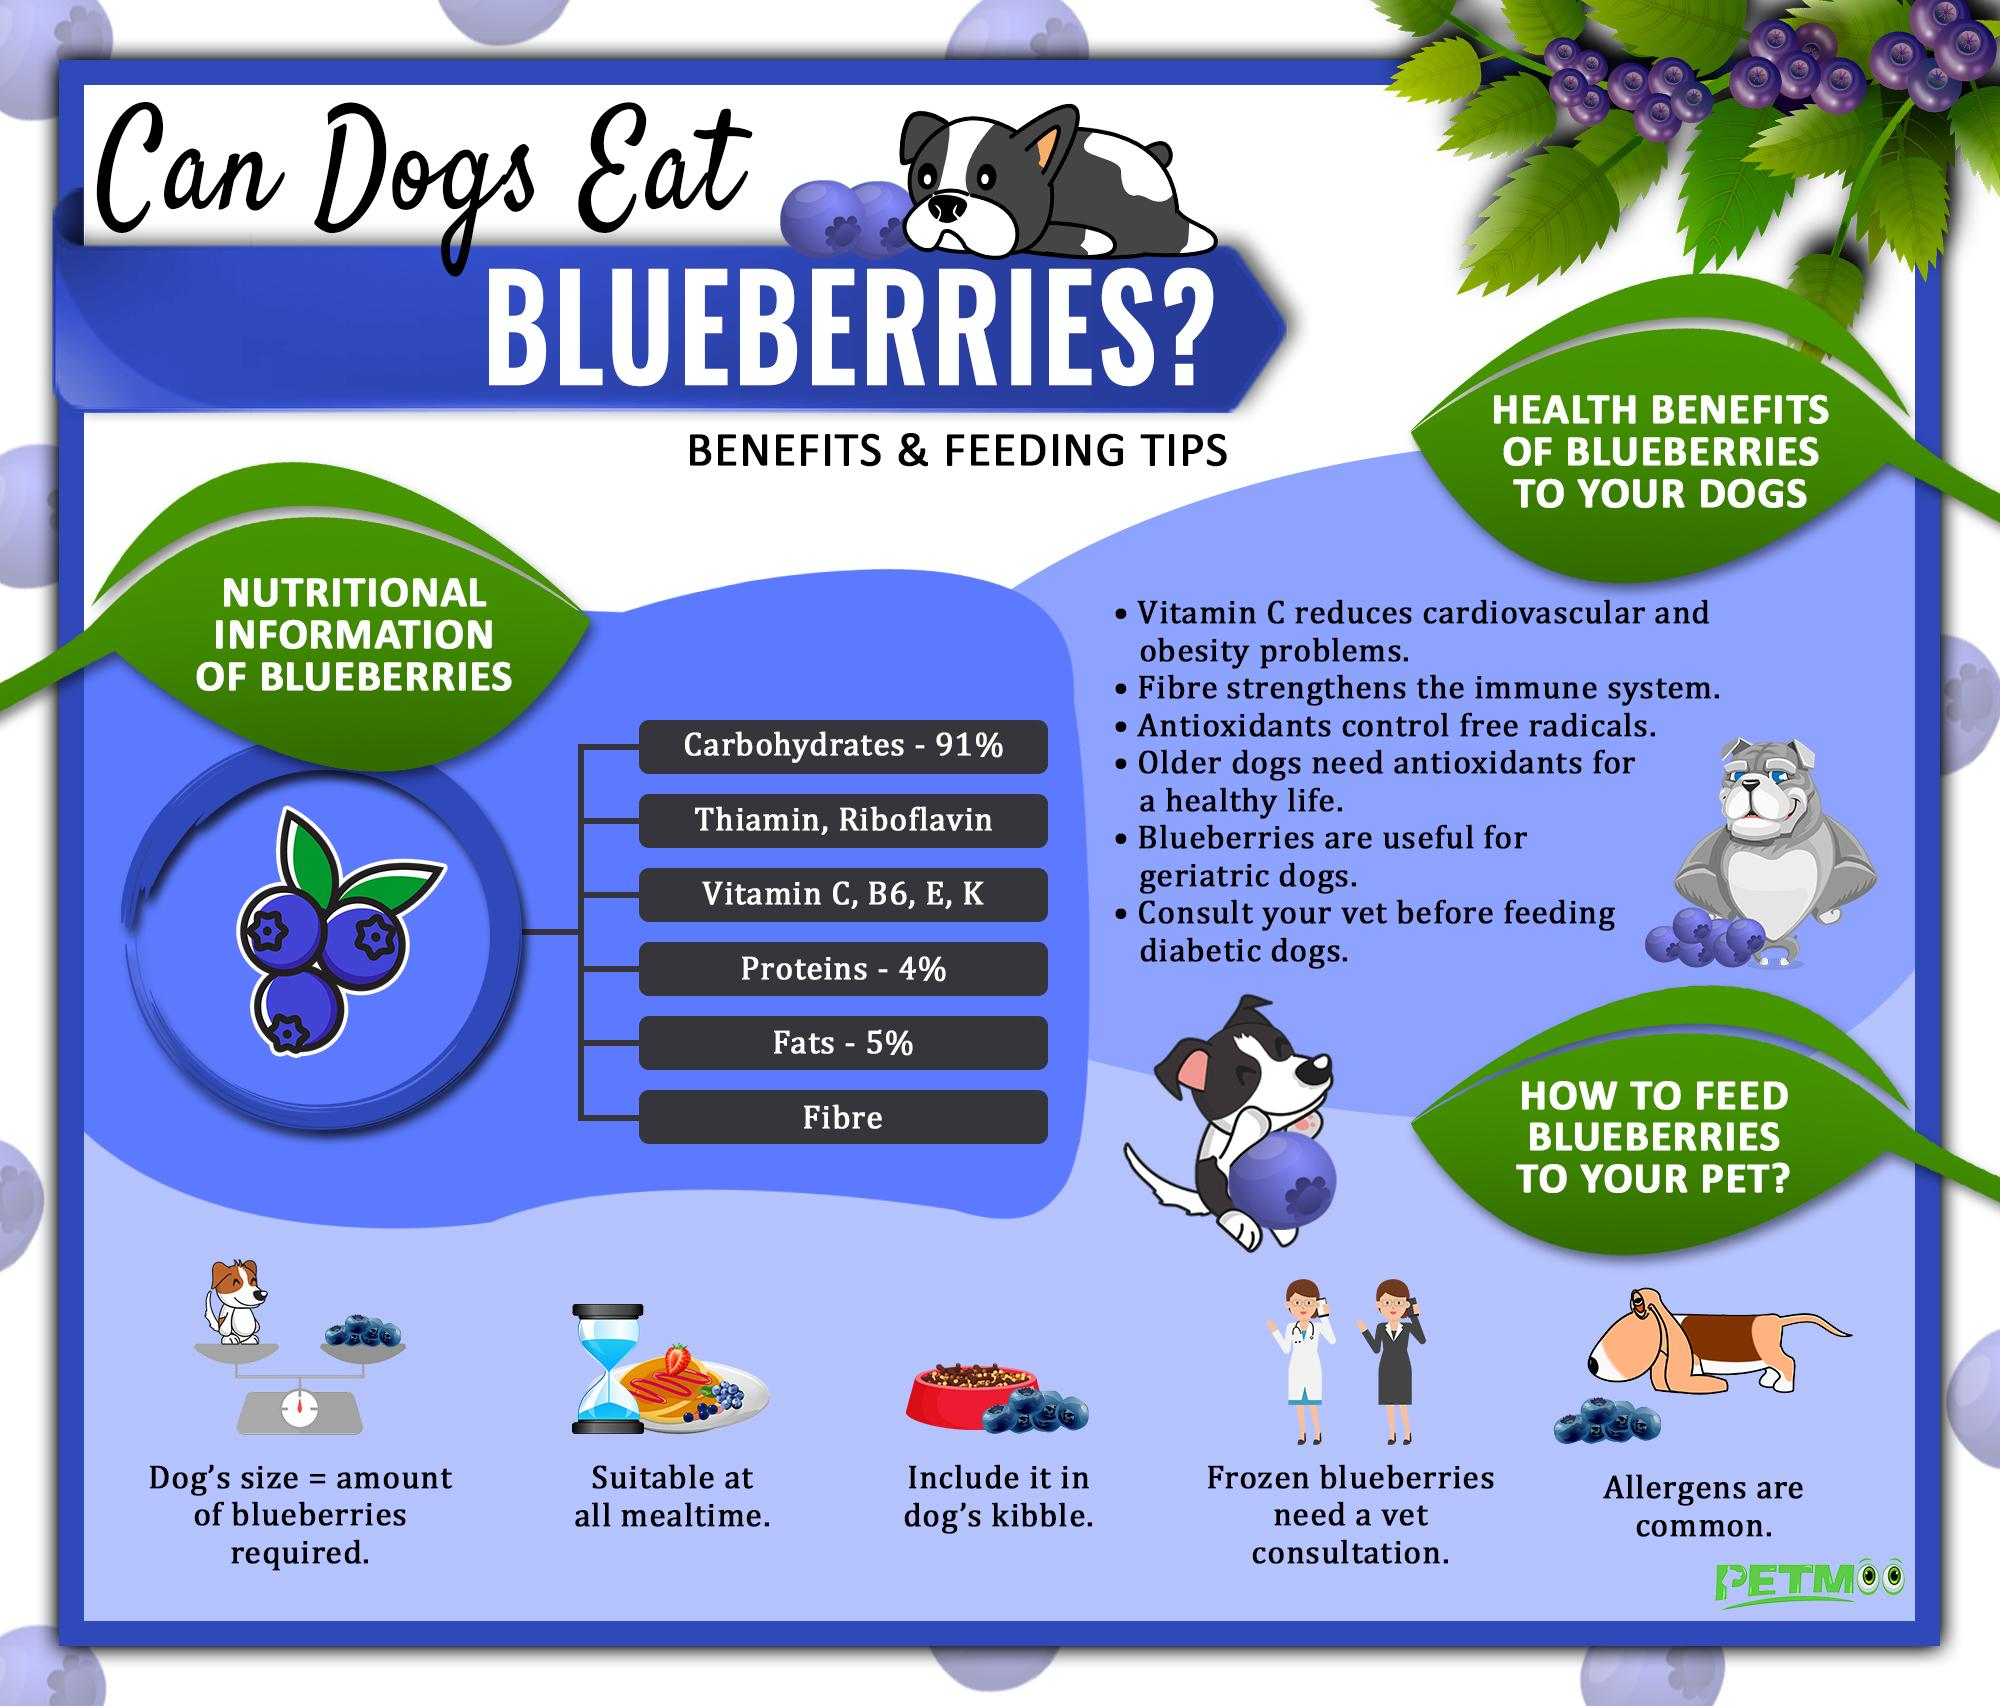 Can Dogs Eat Blueberries Infographic